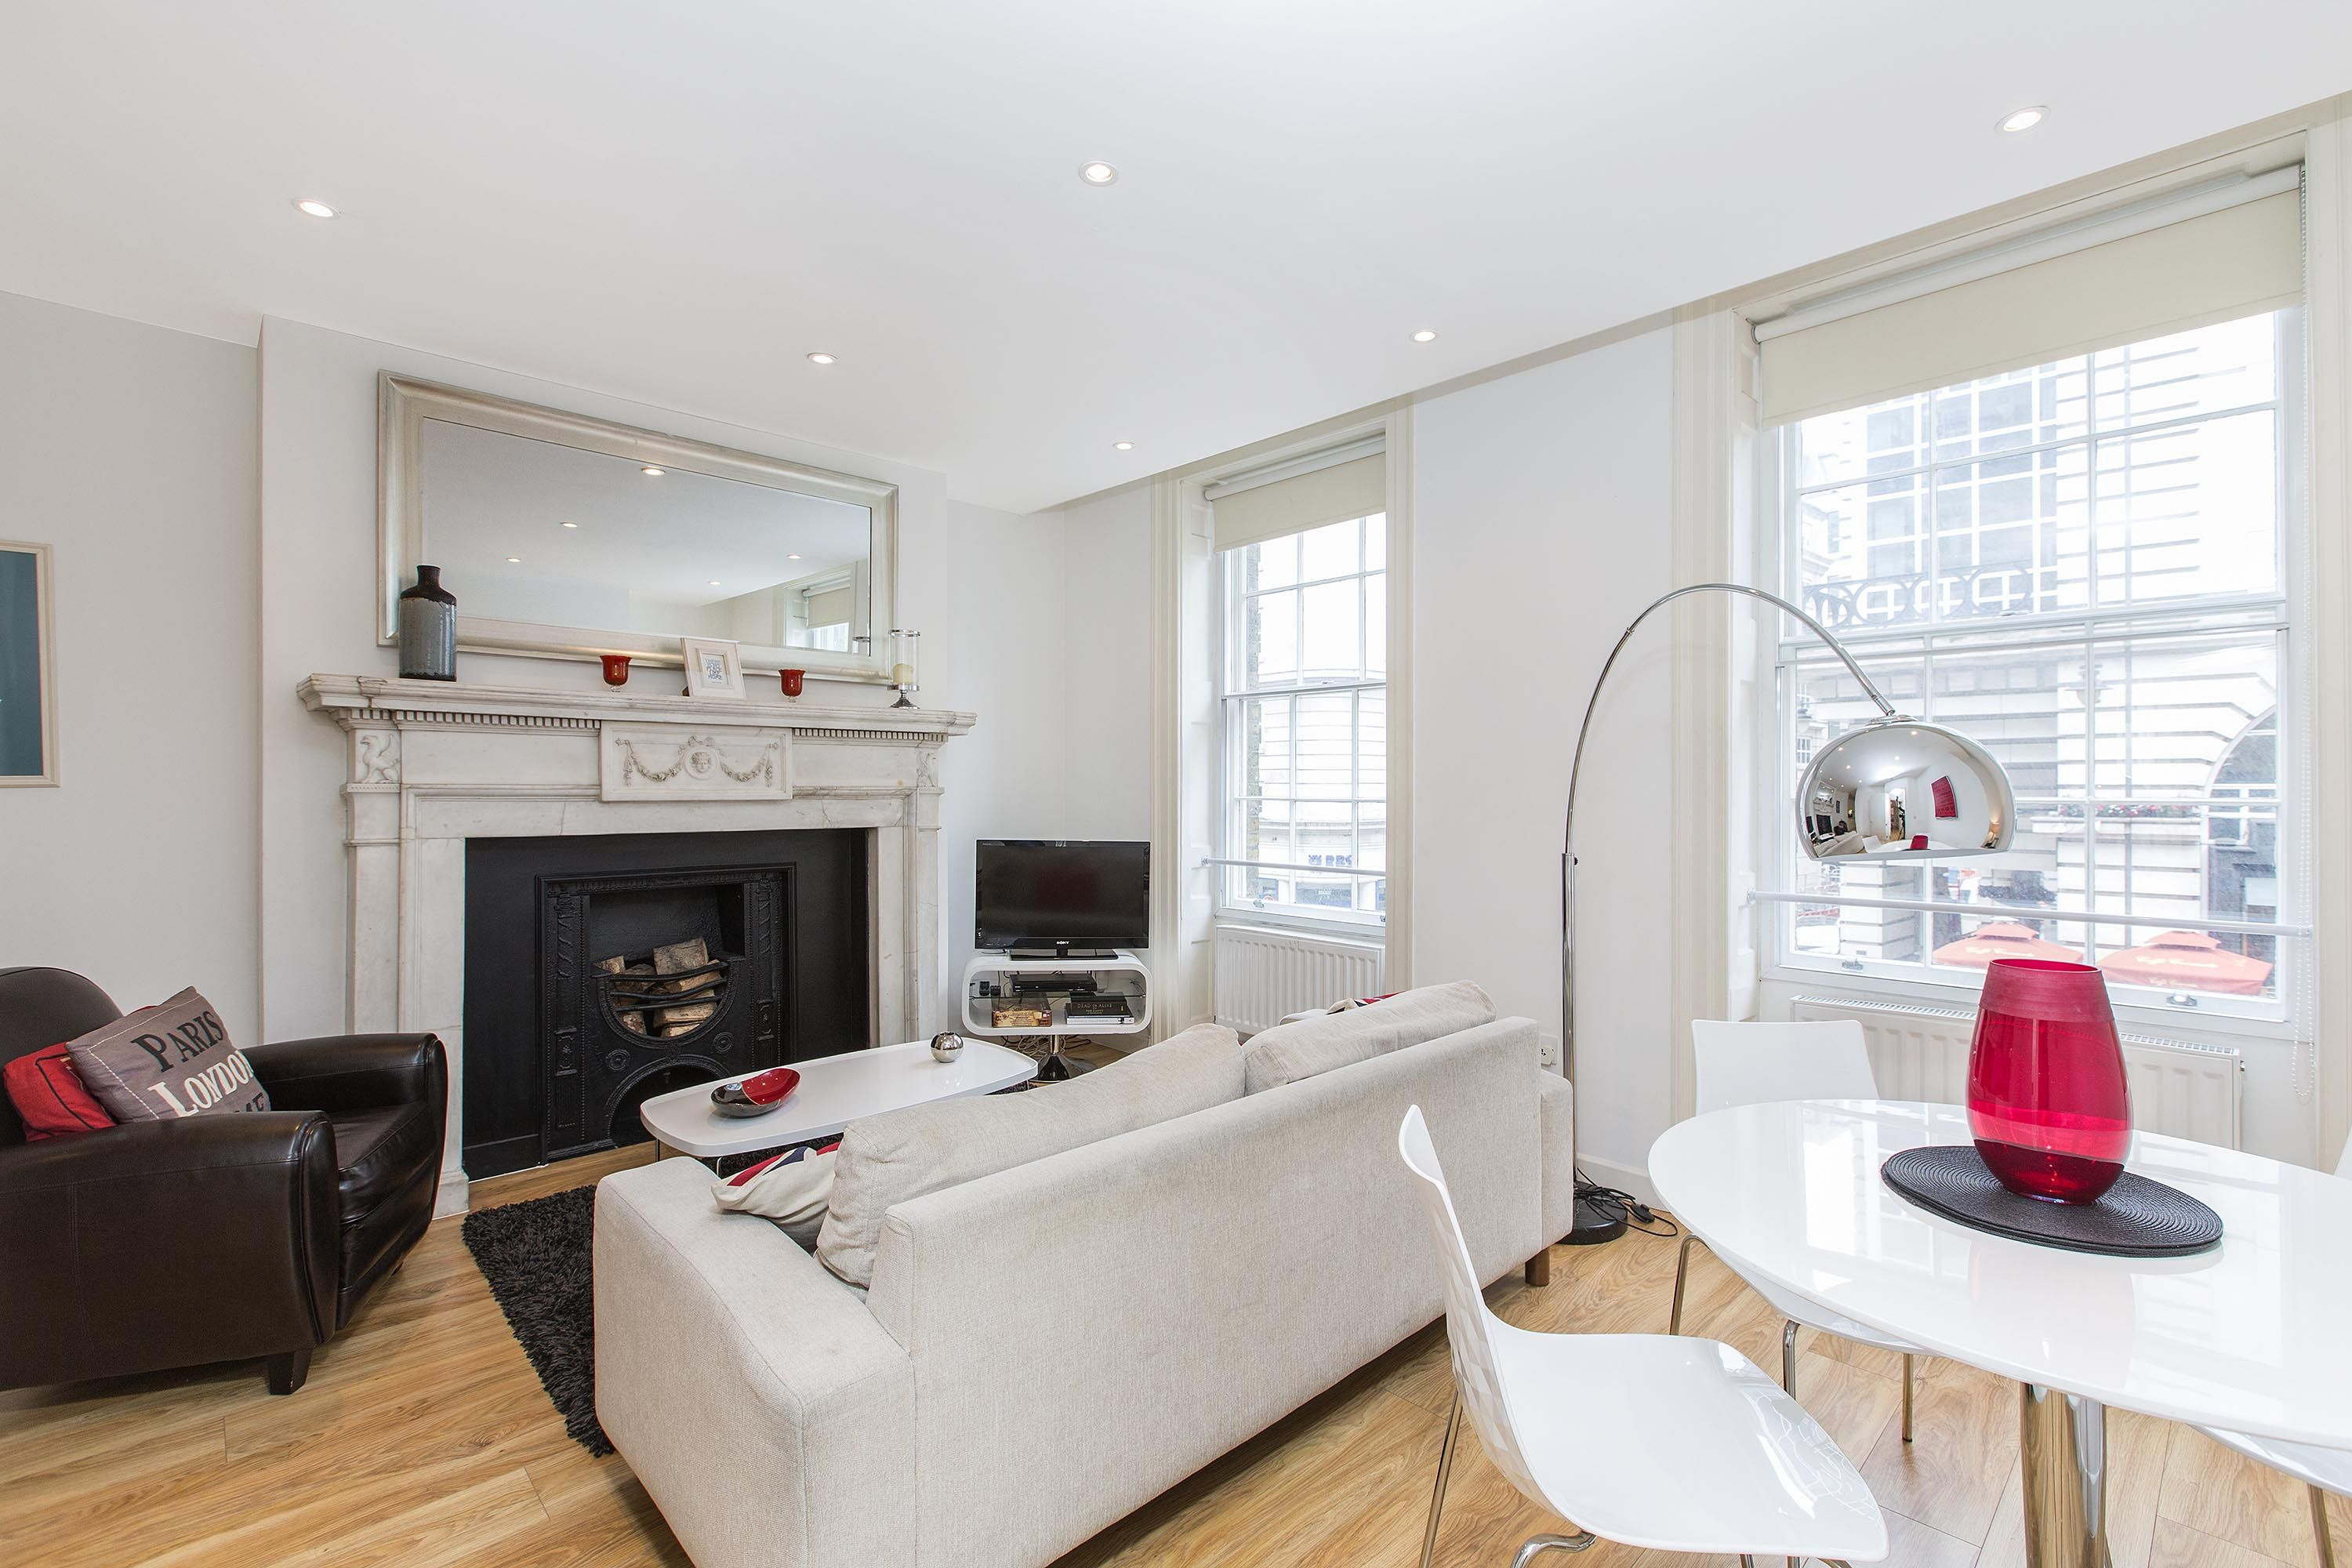 3 33 Haymarket 3 Bedroom 2 Bathrooms Her Majesty S Theater Is Just Down The Street Theatre Ro London Vacation Rentals Beautiful Vacations Rental Apartments